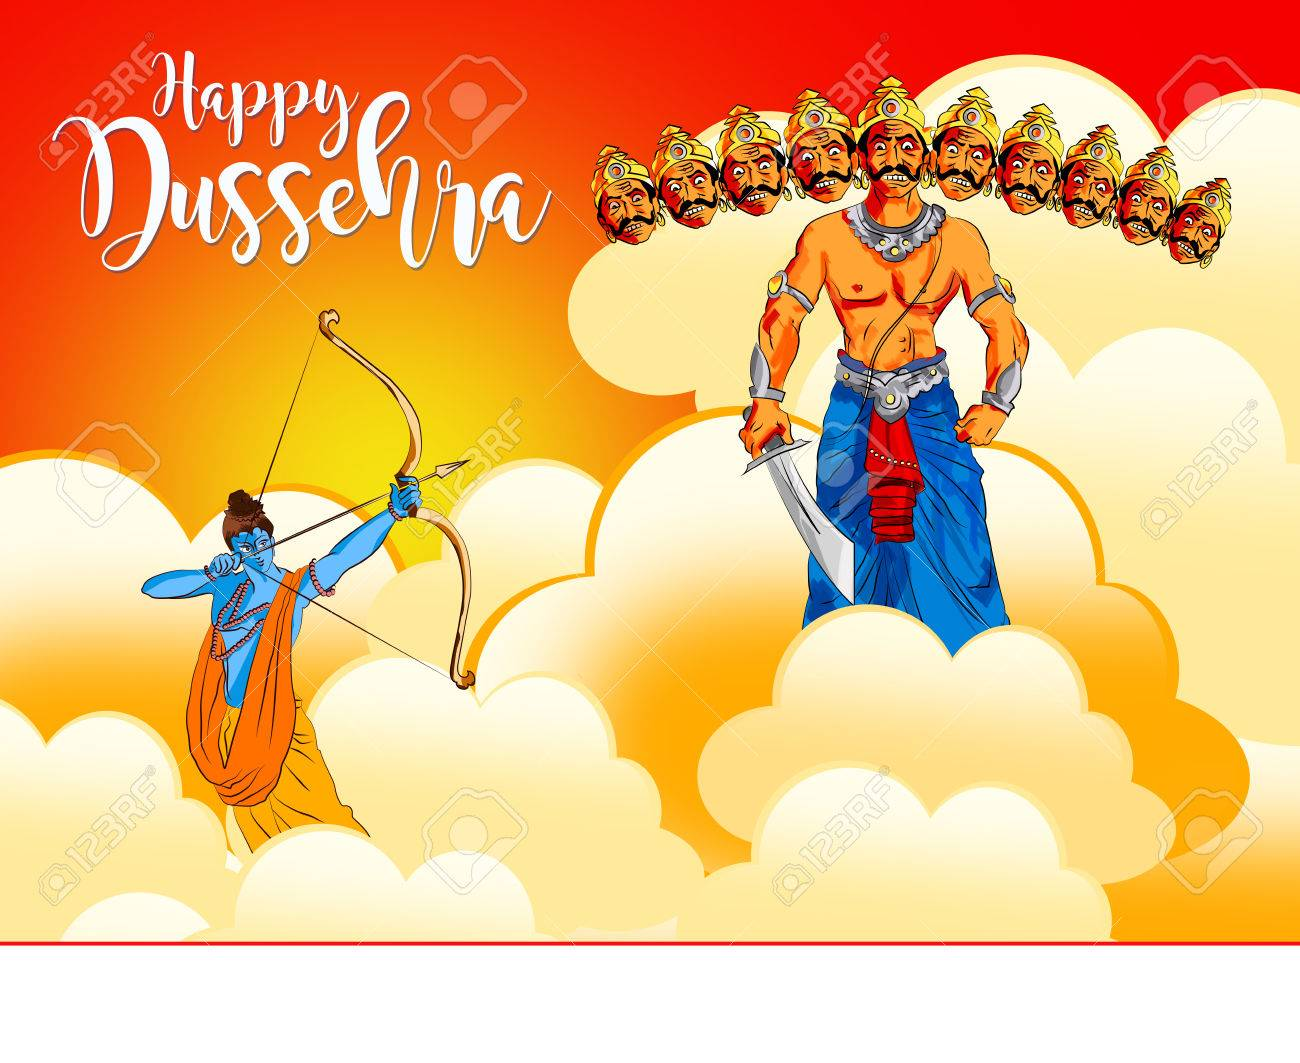 Antique stock illustration of happy dussehra greeting card antique stock illustration of antique stock illustration of happy dussehra greeting card m4hsunfo